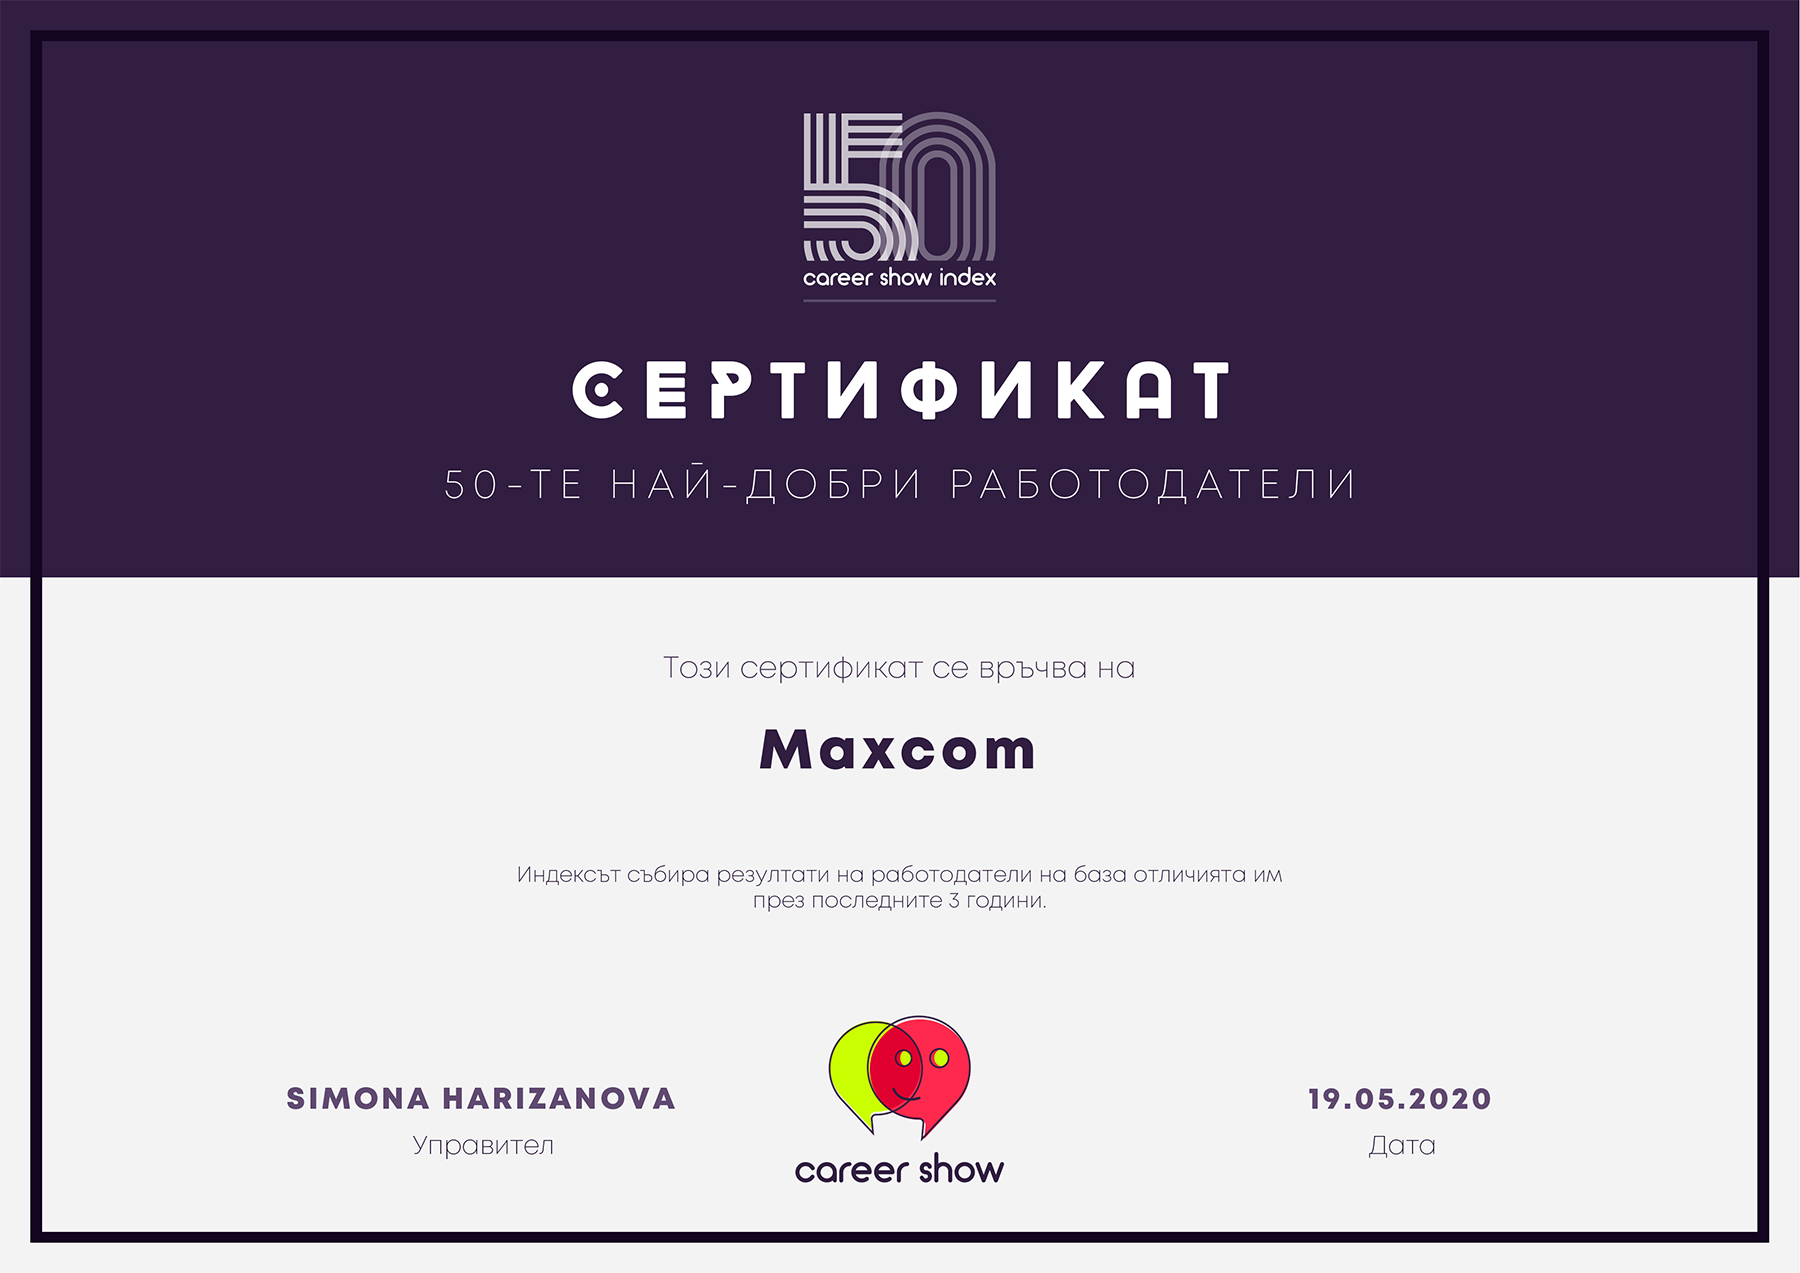 Maxcom is among the 50 best employers in Bulgaria